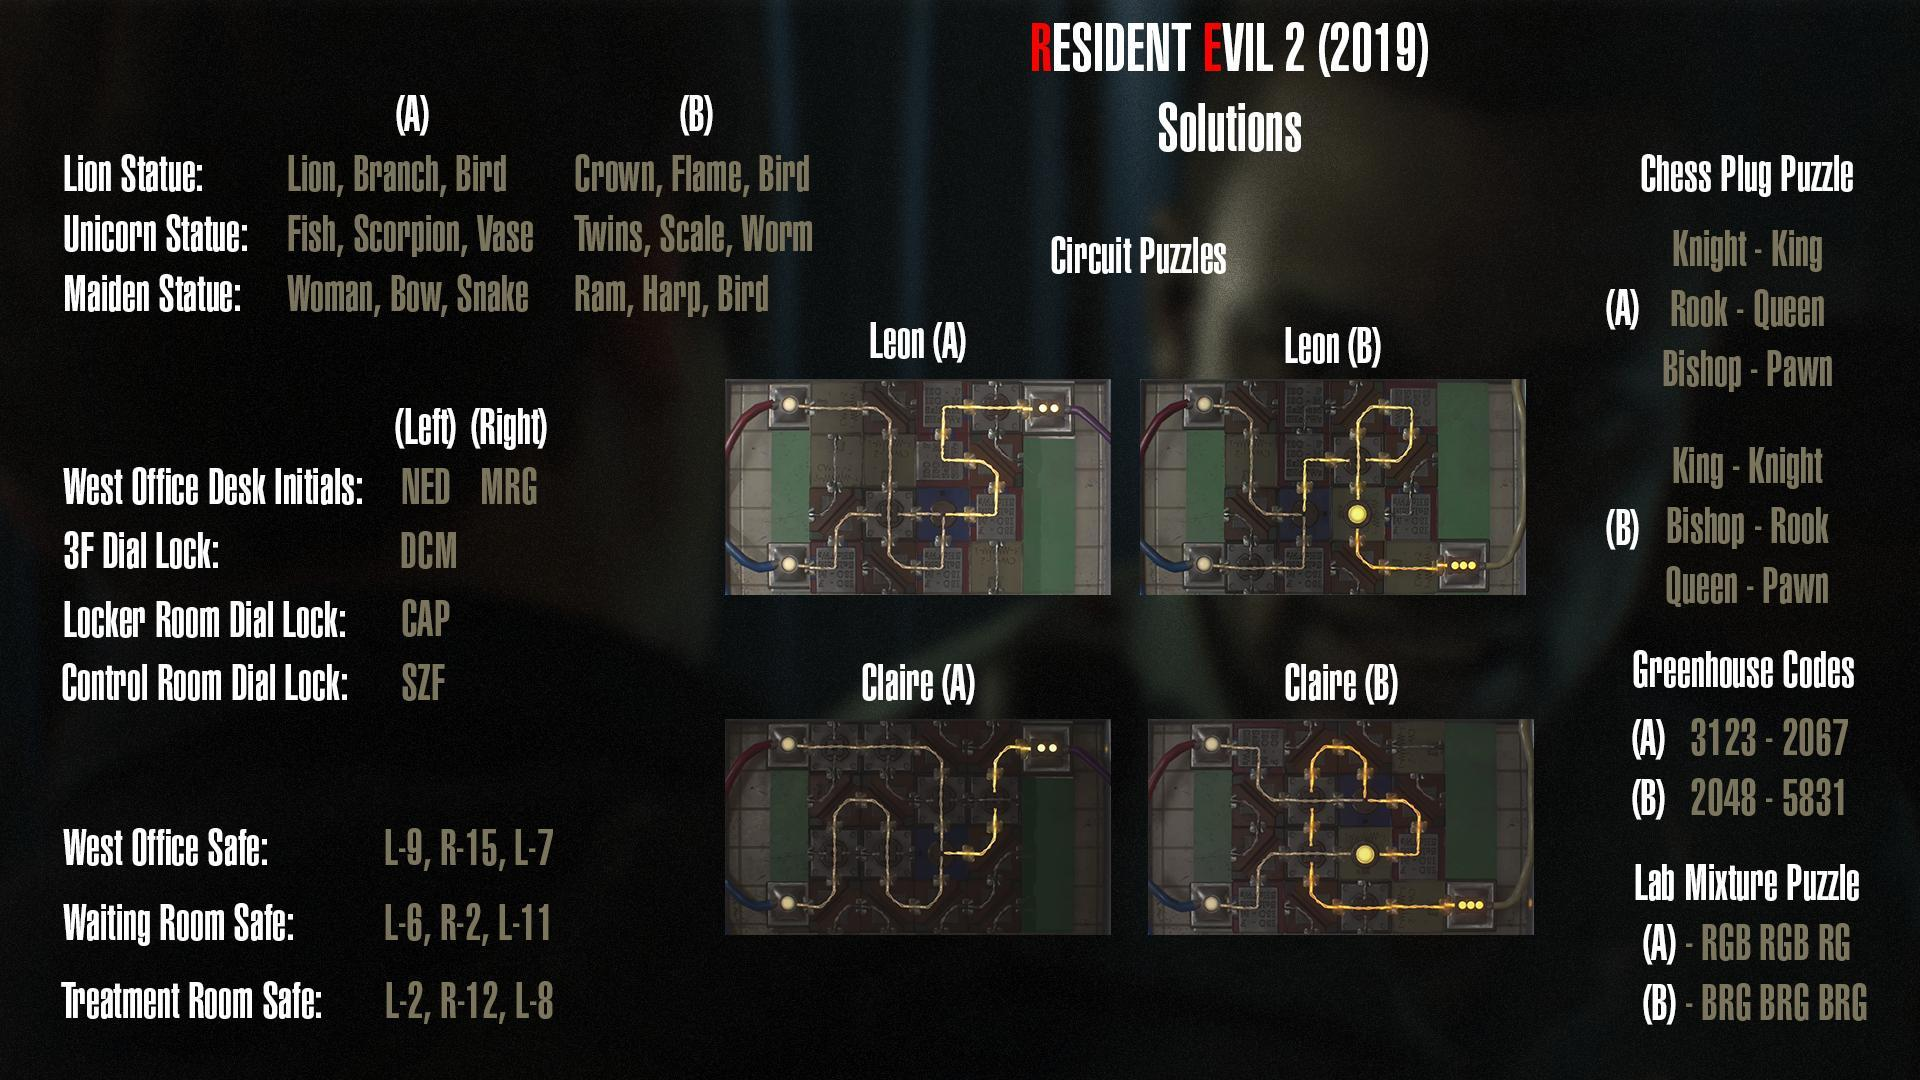 Resident Evil 2 - 100% Achievement Guide and Puzzle Solutions